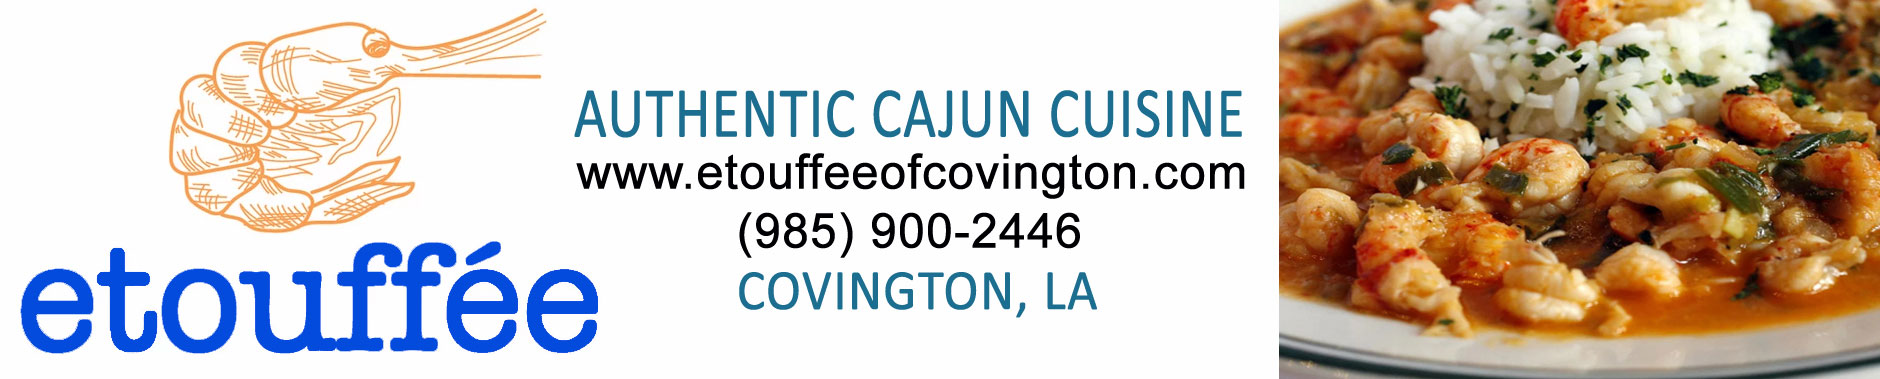 etouffee Authentic Cajun Cuisine